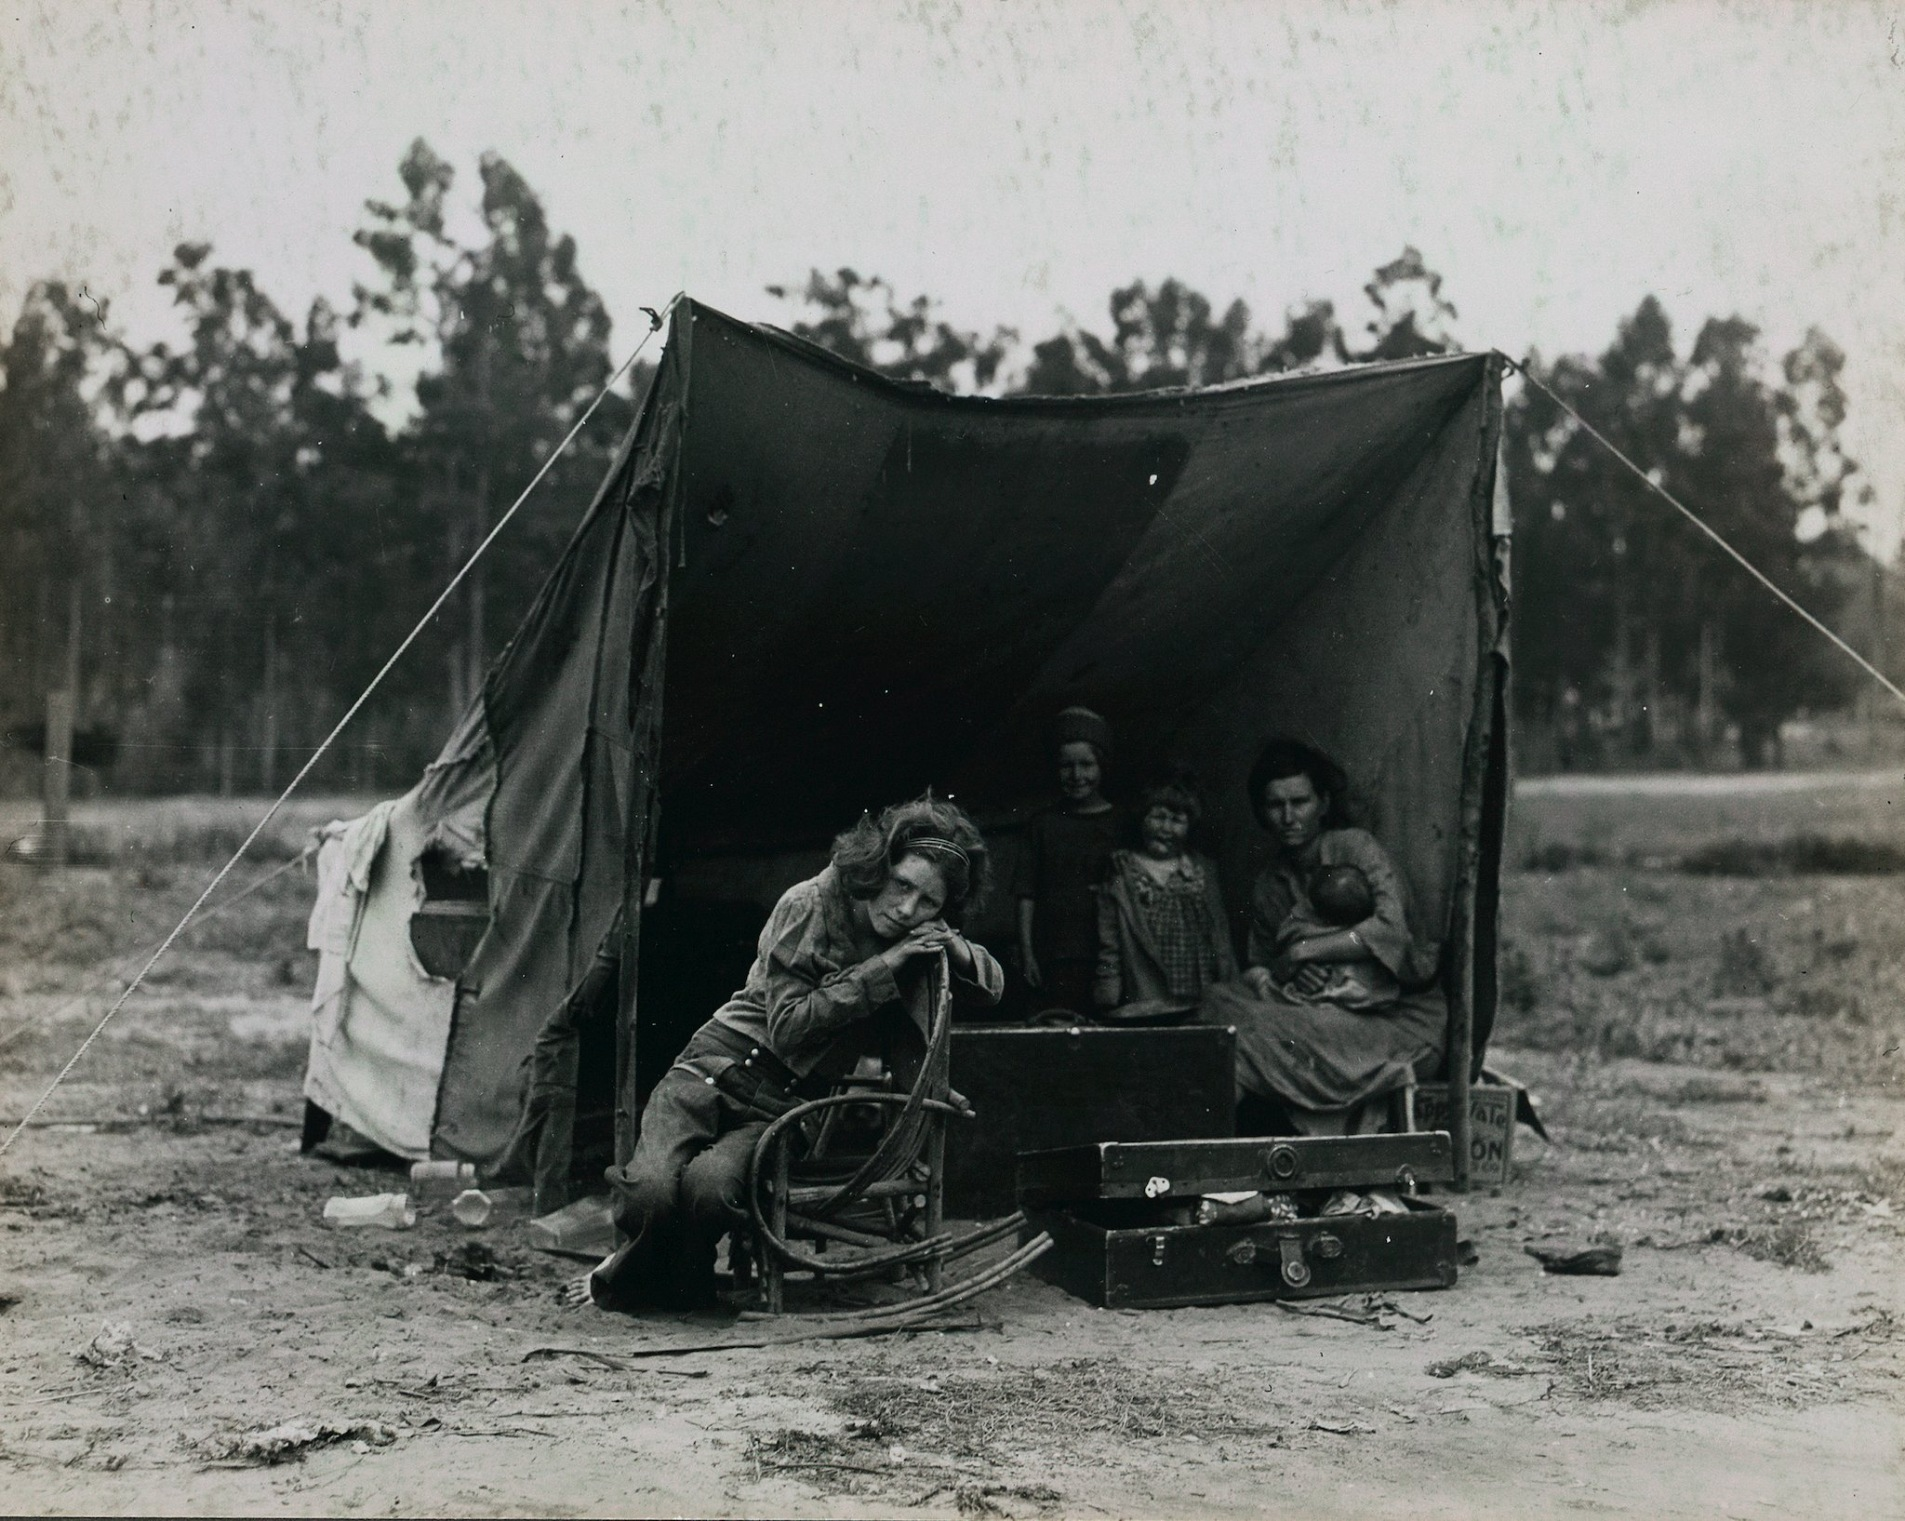 the tent of Florence Owens and her kids